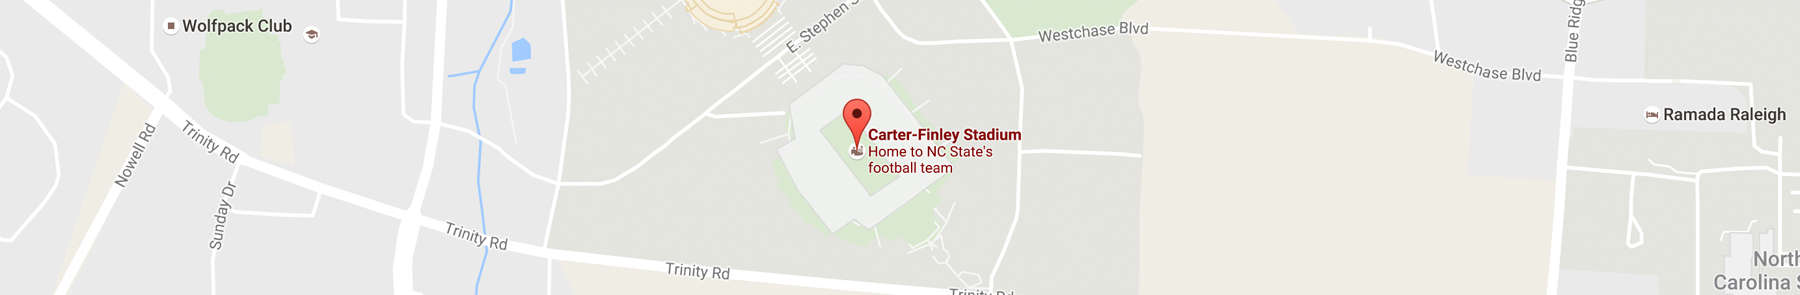 Carter-Finley Stadium | NC State University on